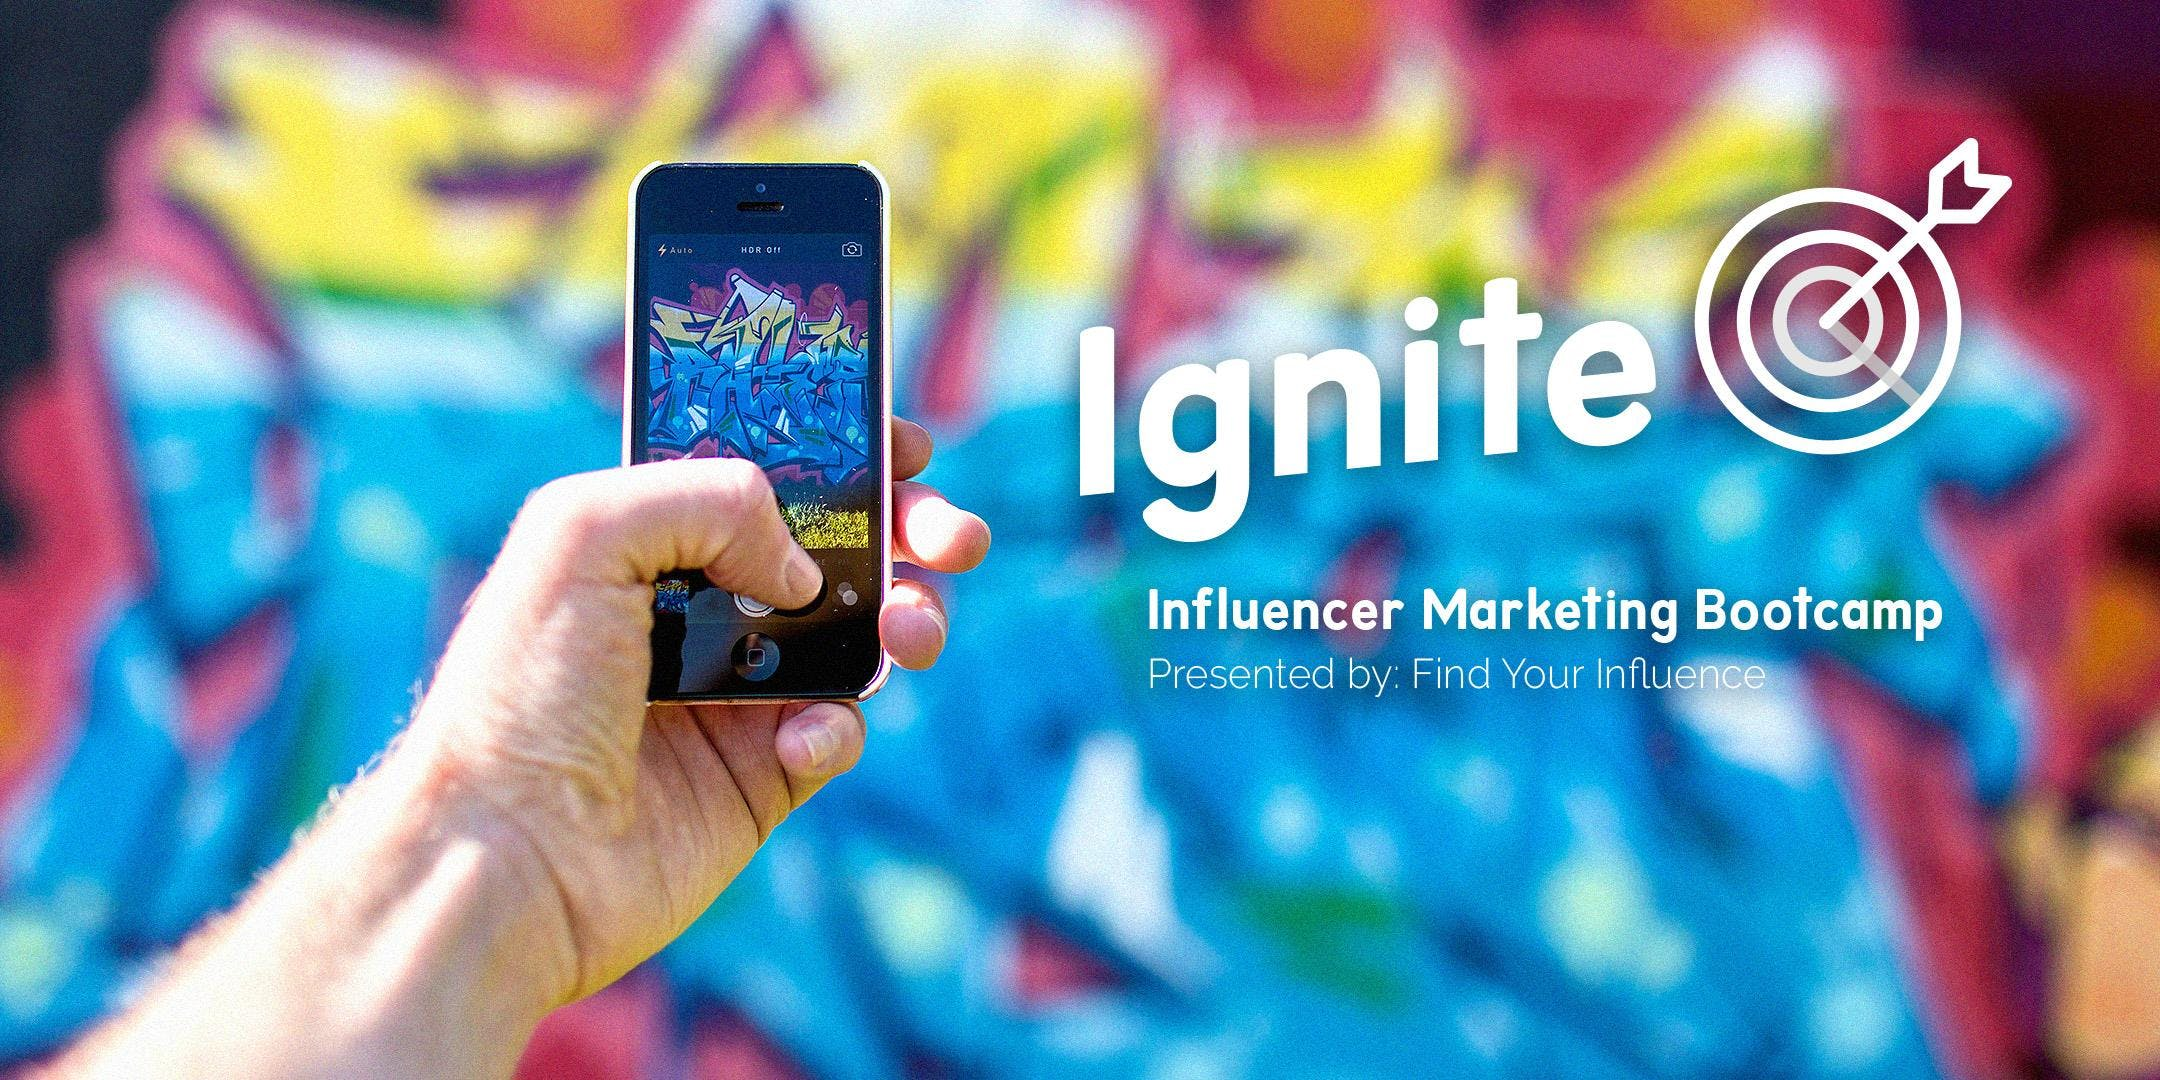 Ignite: Influencer Marketing Bootcamp